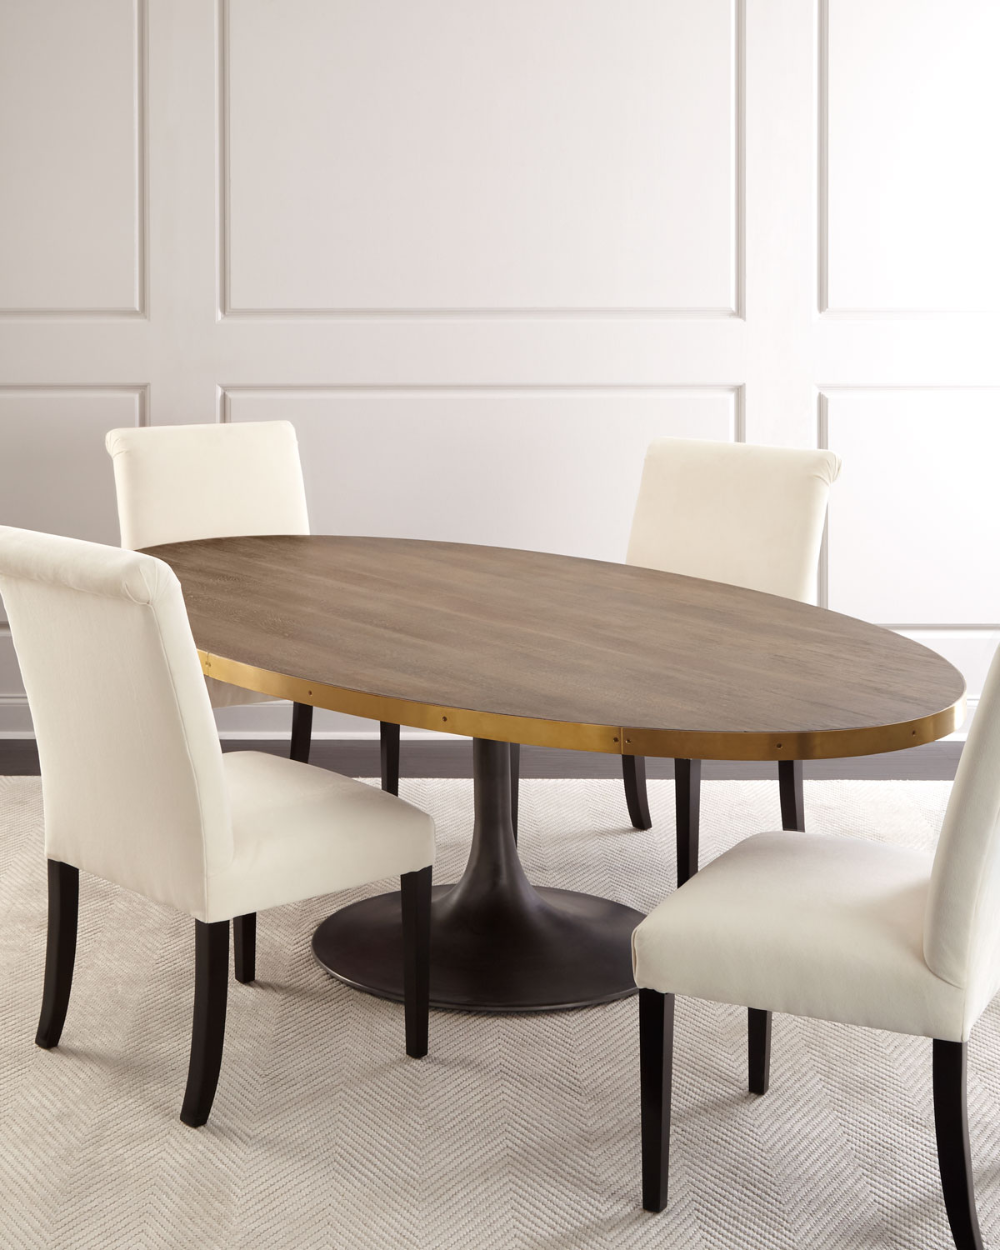 Rachel Oval Dining Table And Matching Items Matching Items Oval Table Dining Oval Dinning Room Table Dinning Table Decor